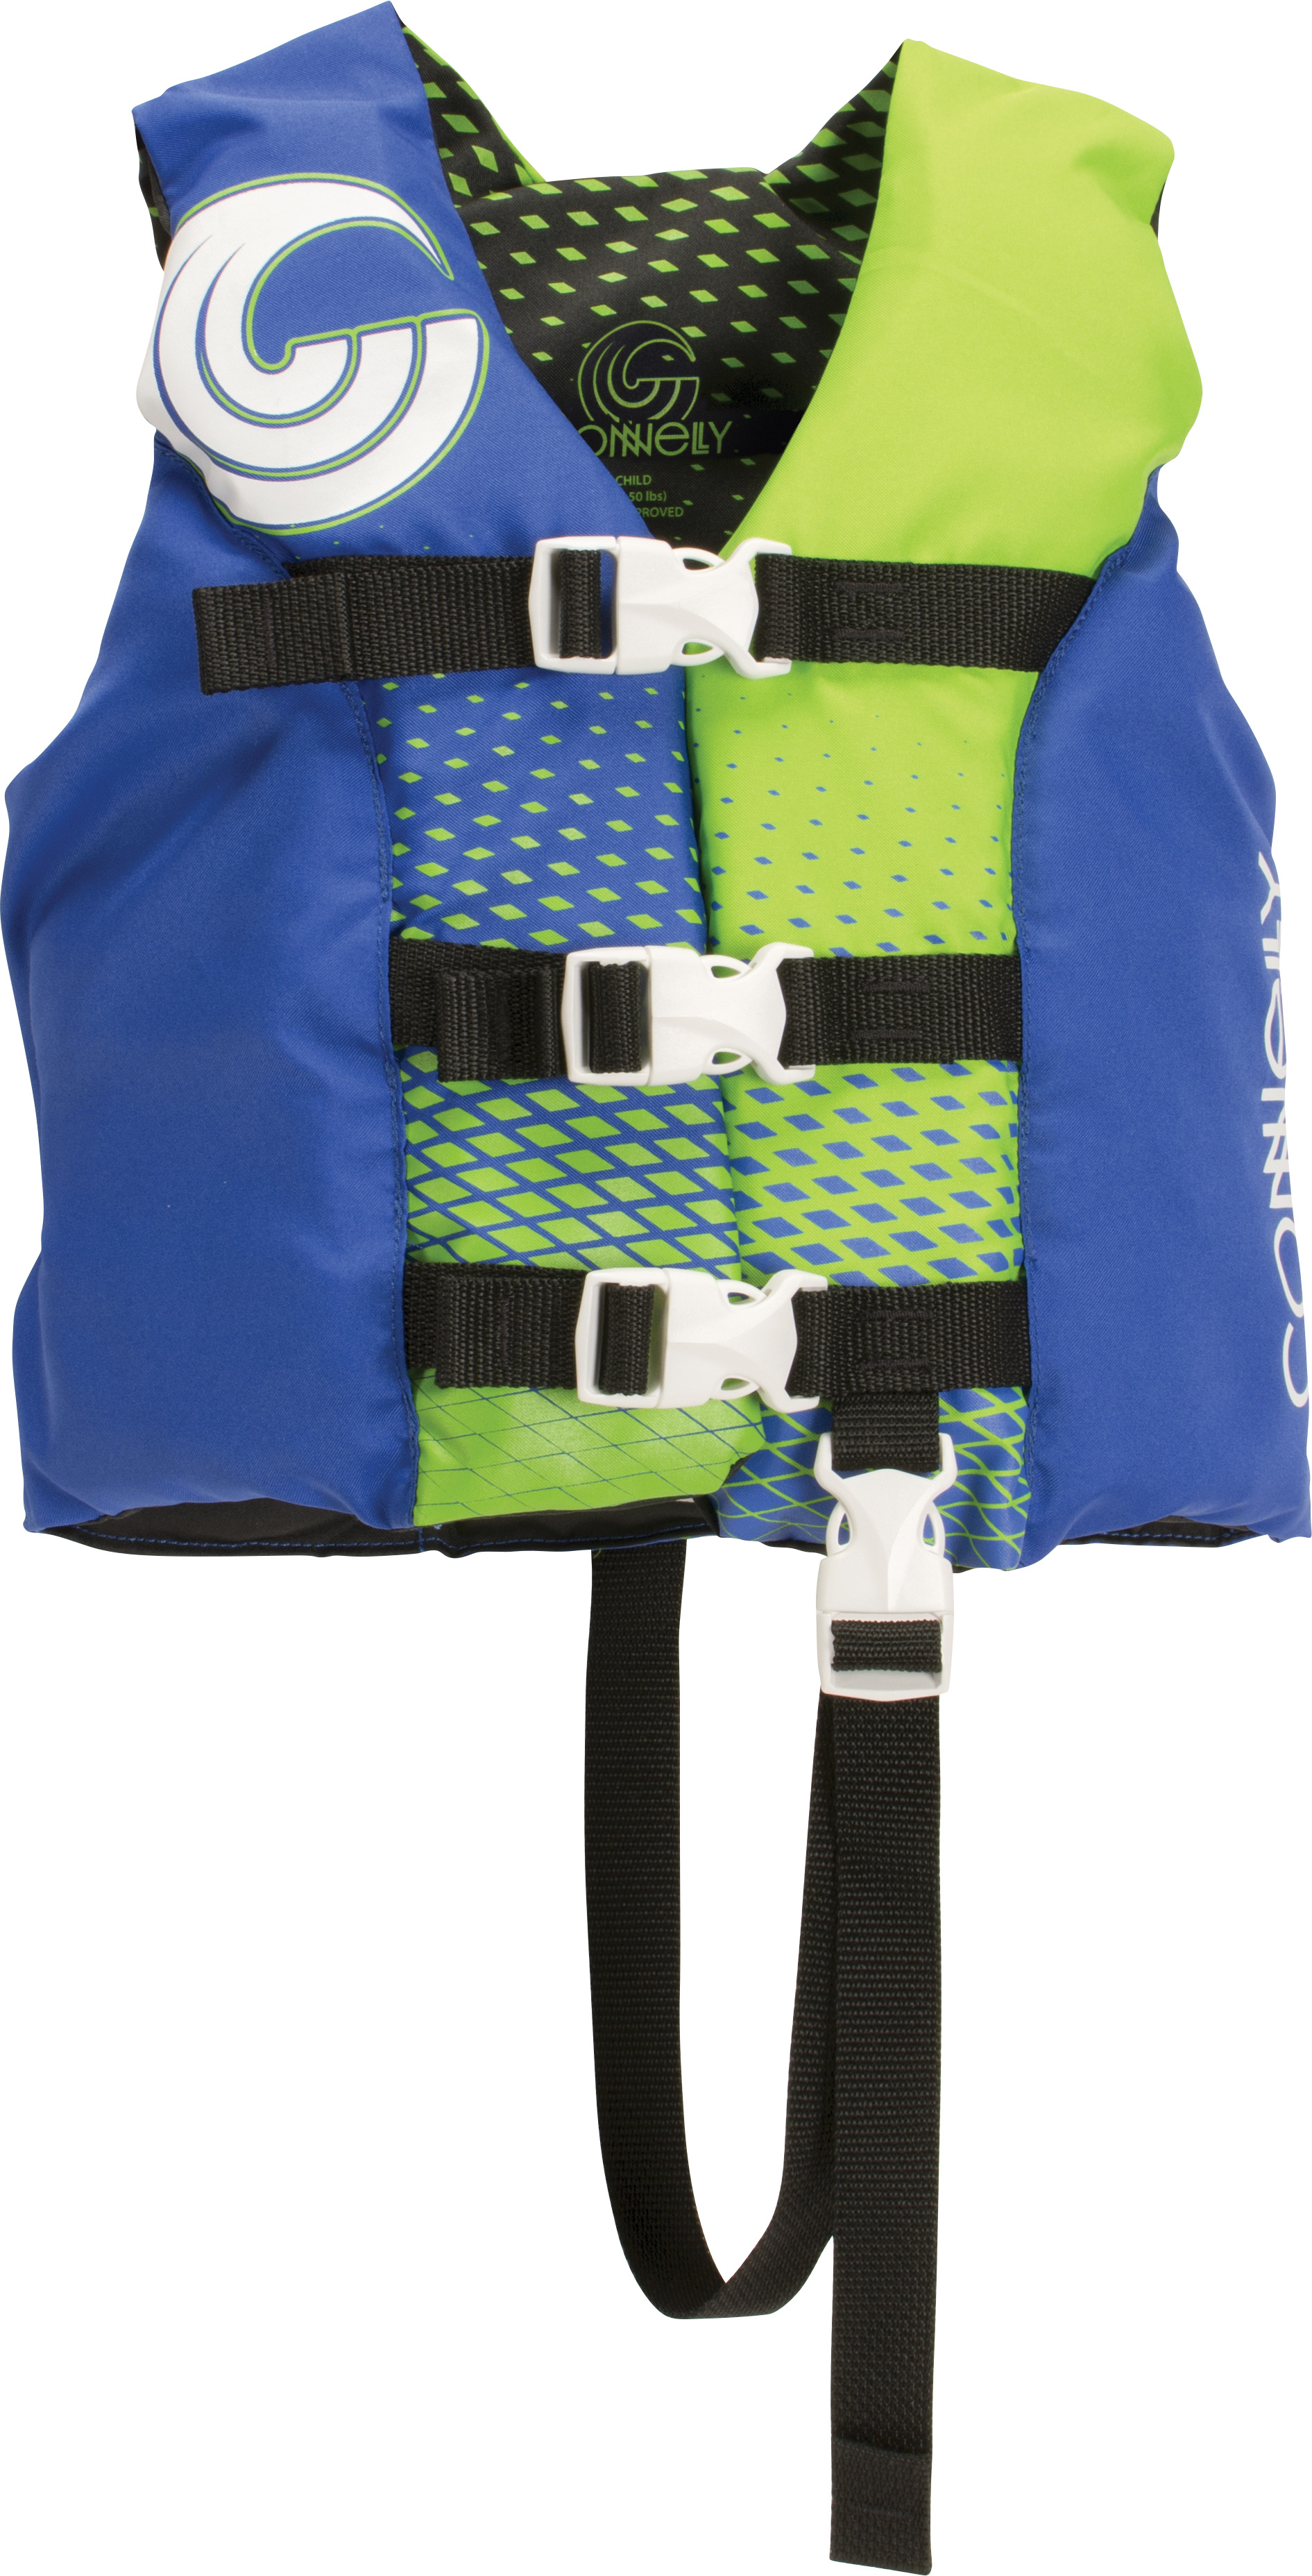 3-BELT BOY'S NYLON LIFE VEST - CHILD 13-23KG CONNELLY 2018